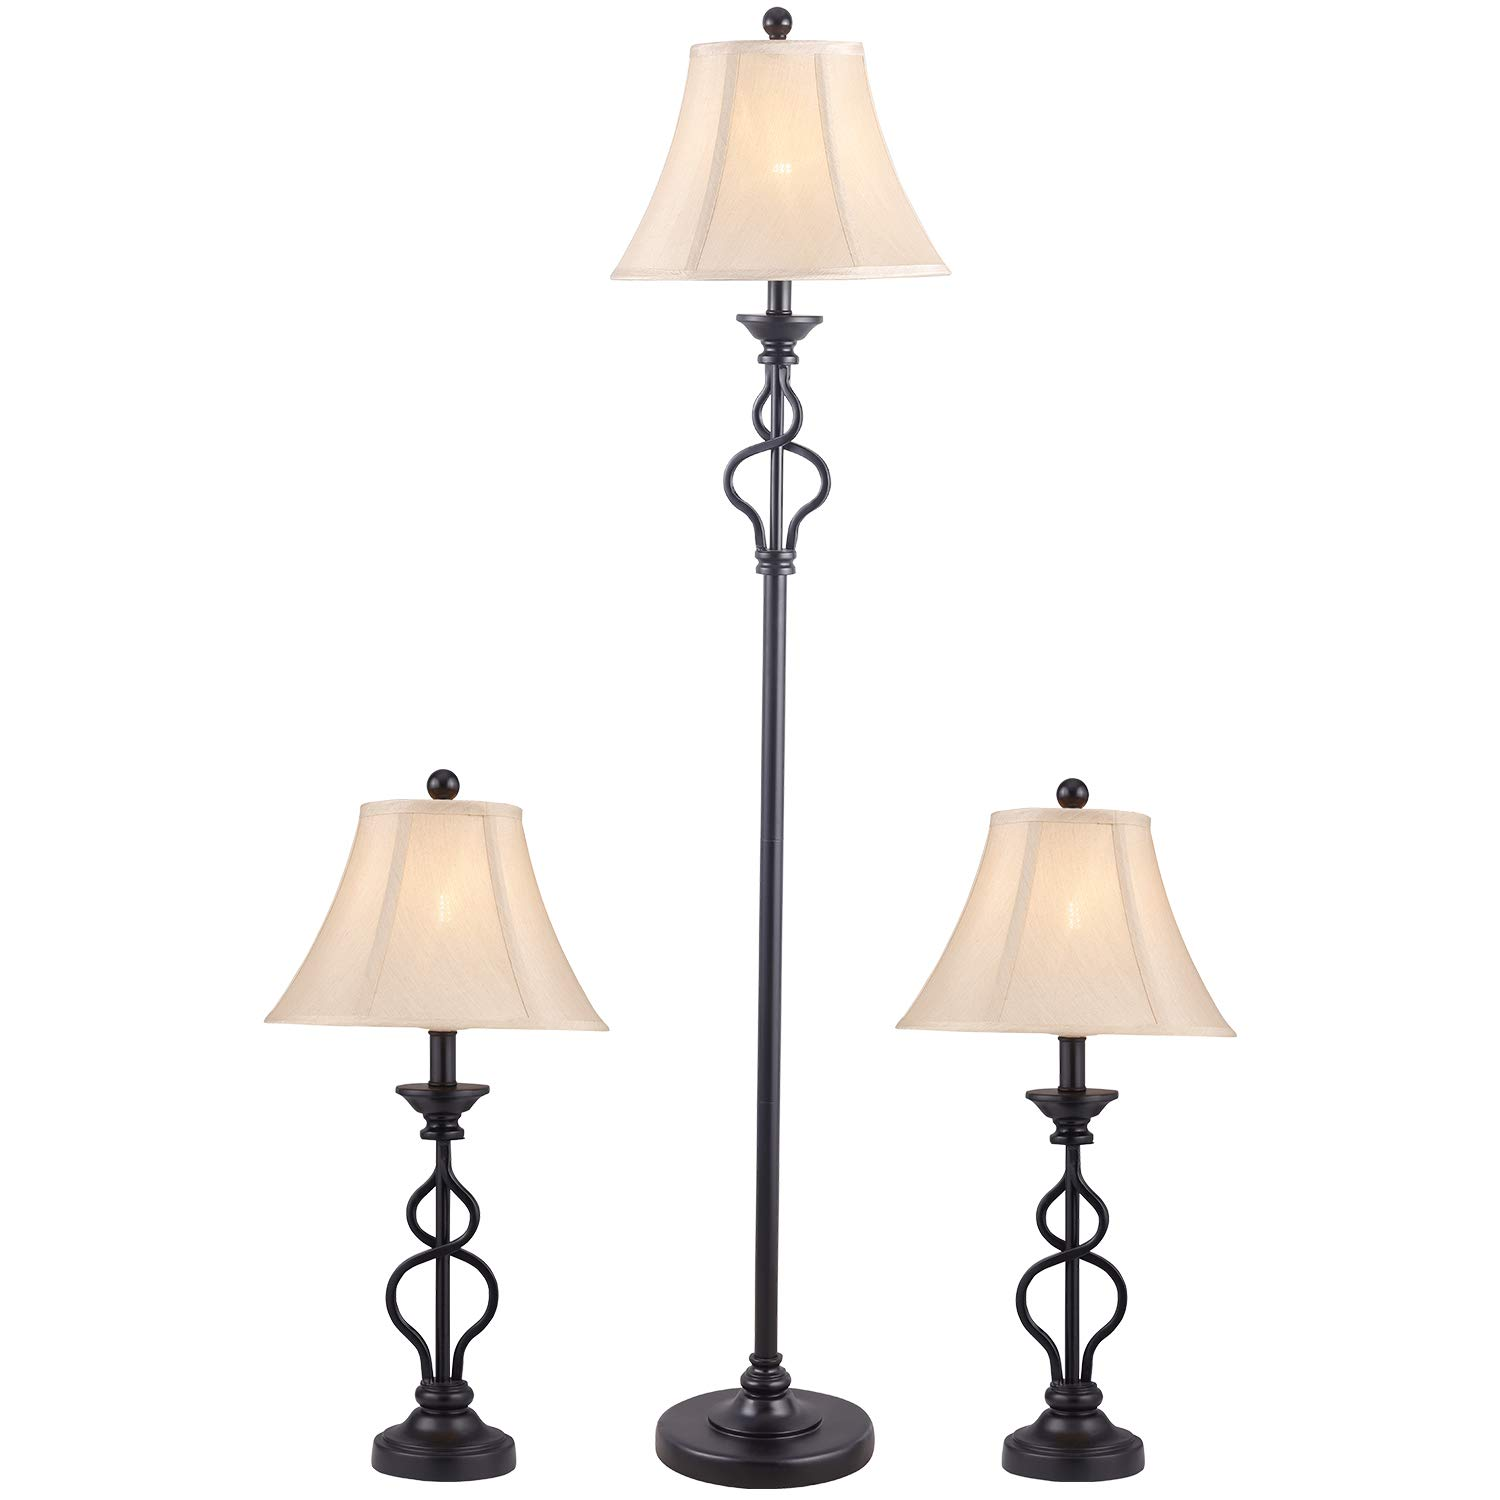 Oneach Modern Lamp Set of 3 with Creme Bell Shade Metal Floor Lamp and  Table Lamp Sets for Living Room,Bedroom, Black